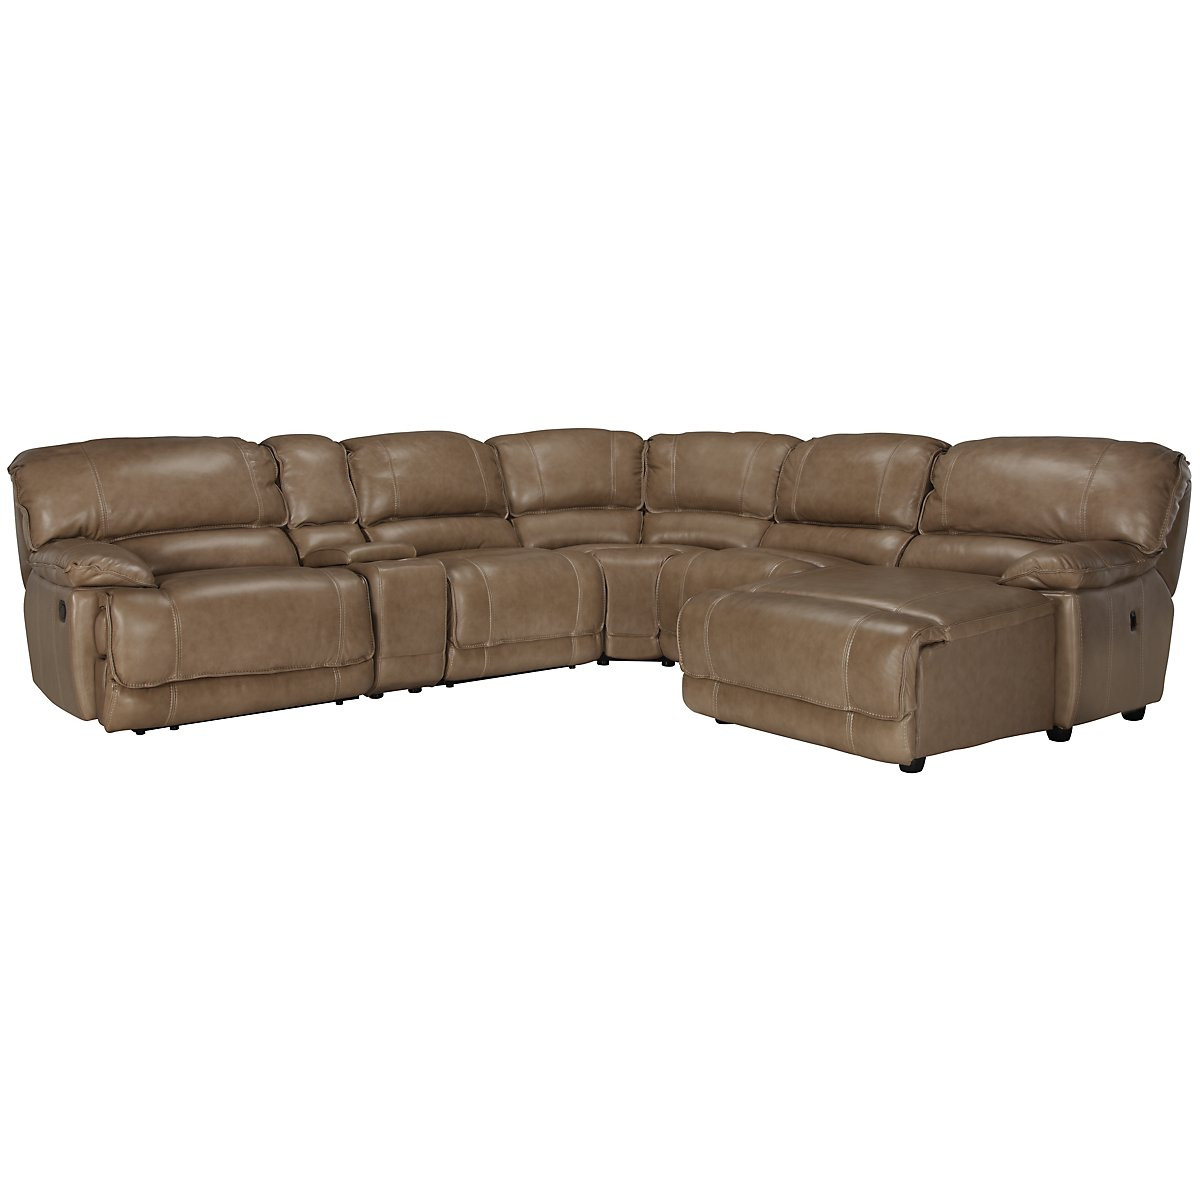 Benson Dk Taupe Leather & Vinyl Right Chaise Power Reclining Sectional